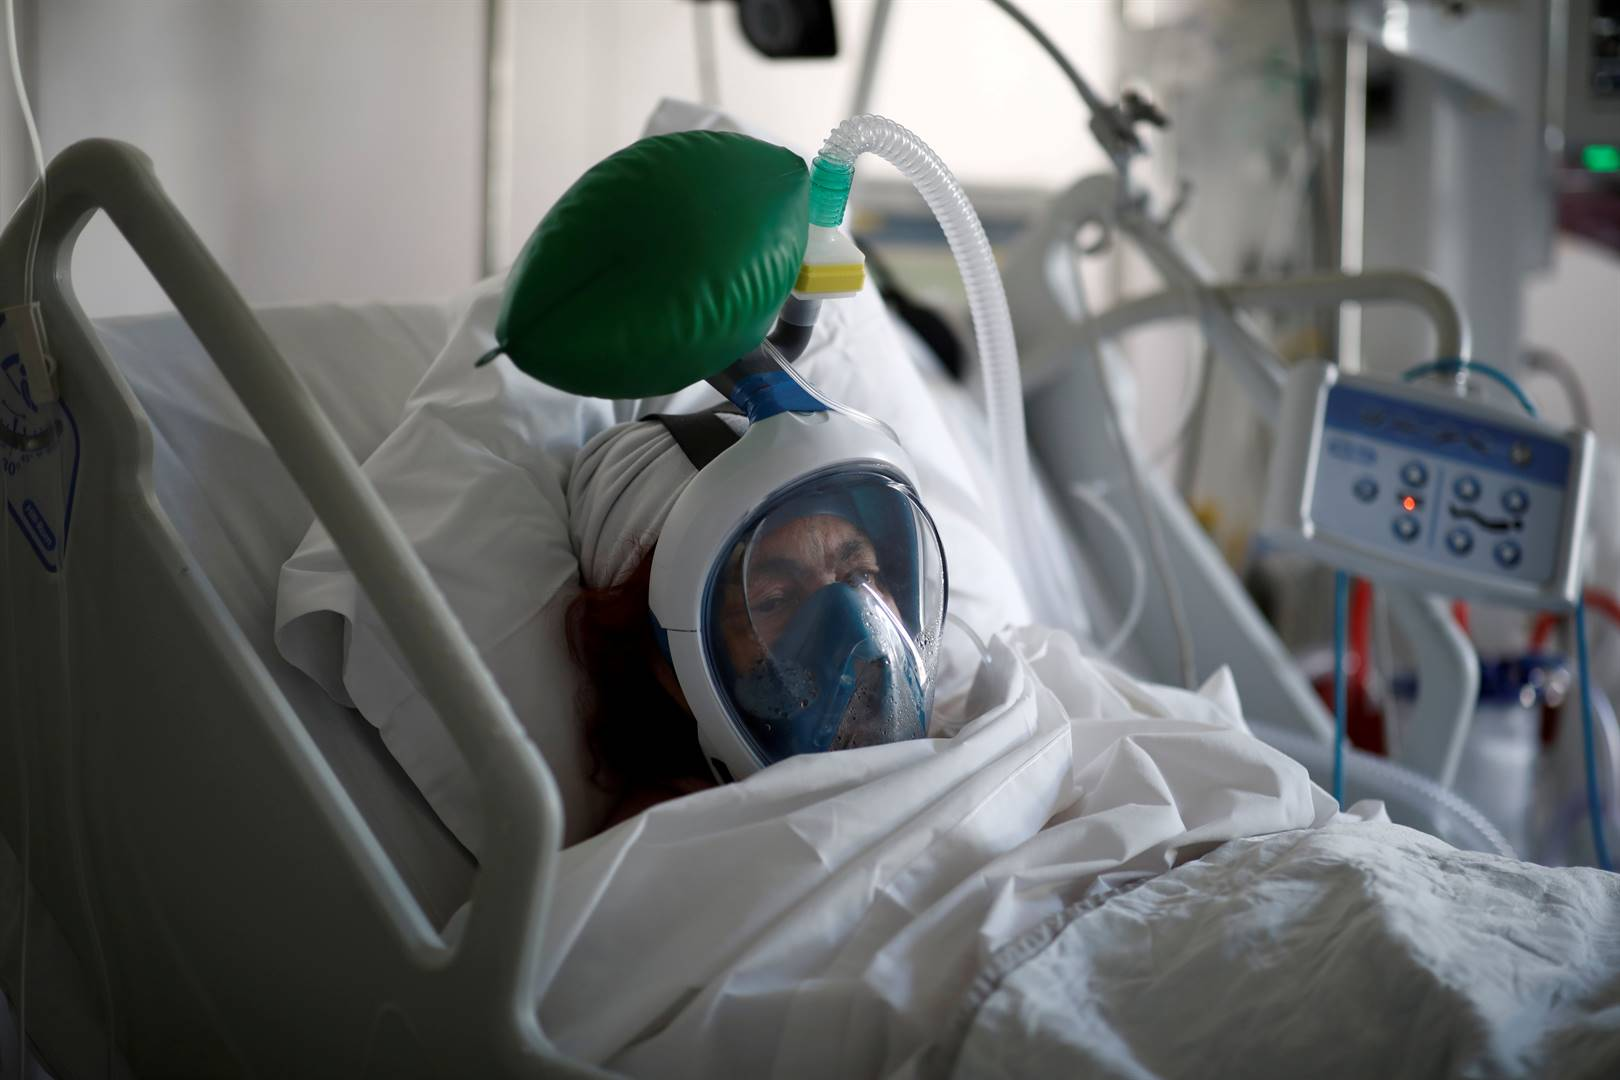 A patient suffering from Covid-19 wears a full-face Easybreath snorkelling mask given by sport chain Decathlon and turned into a ventilator for coronavirus treatment at the intensive care unit at Ambroise Pare clinic in Neuilly-sur-Seine near Paris. Picture: Benoit Tessier/Reuters